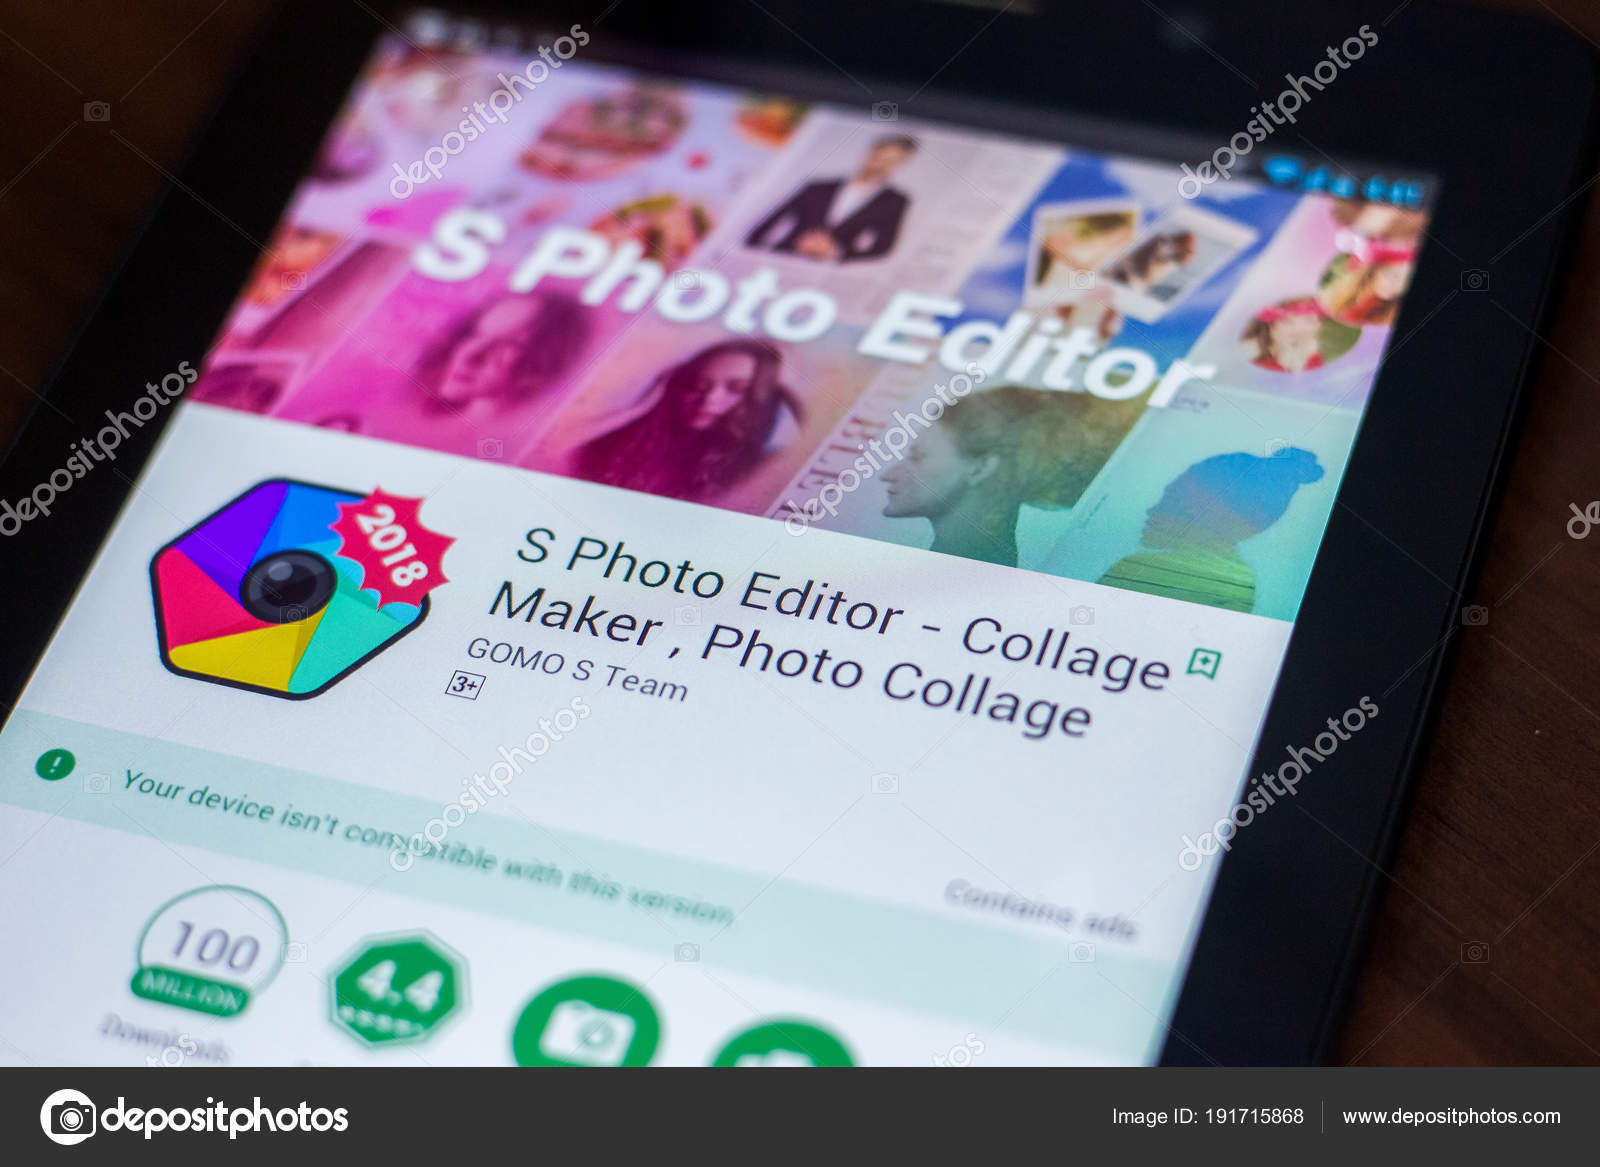 S photo editor collage maker app download